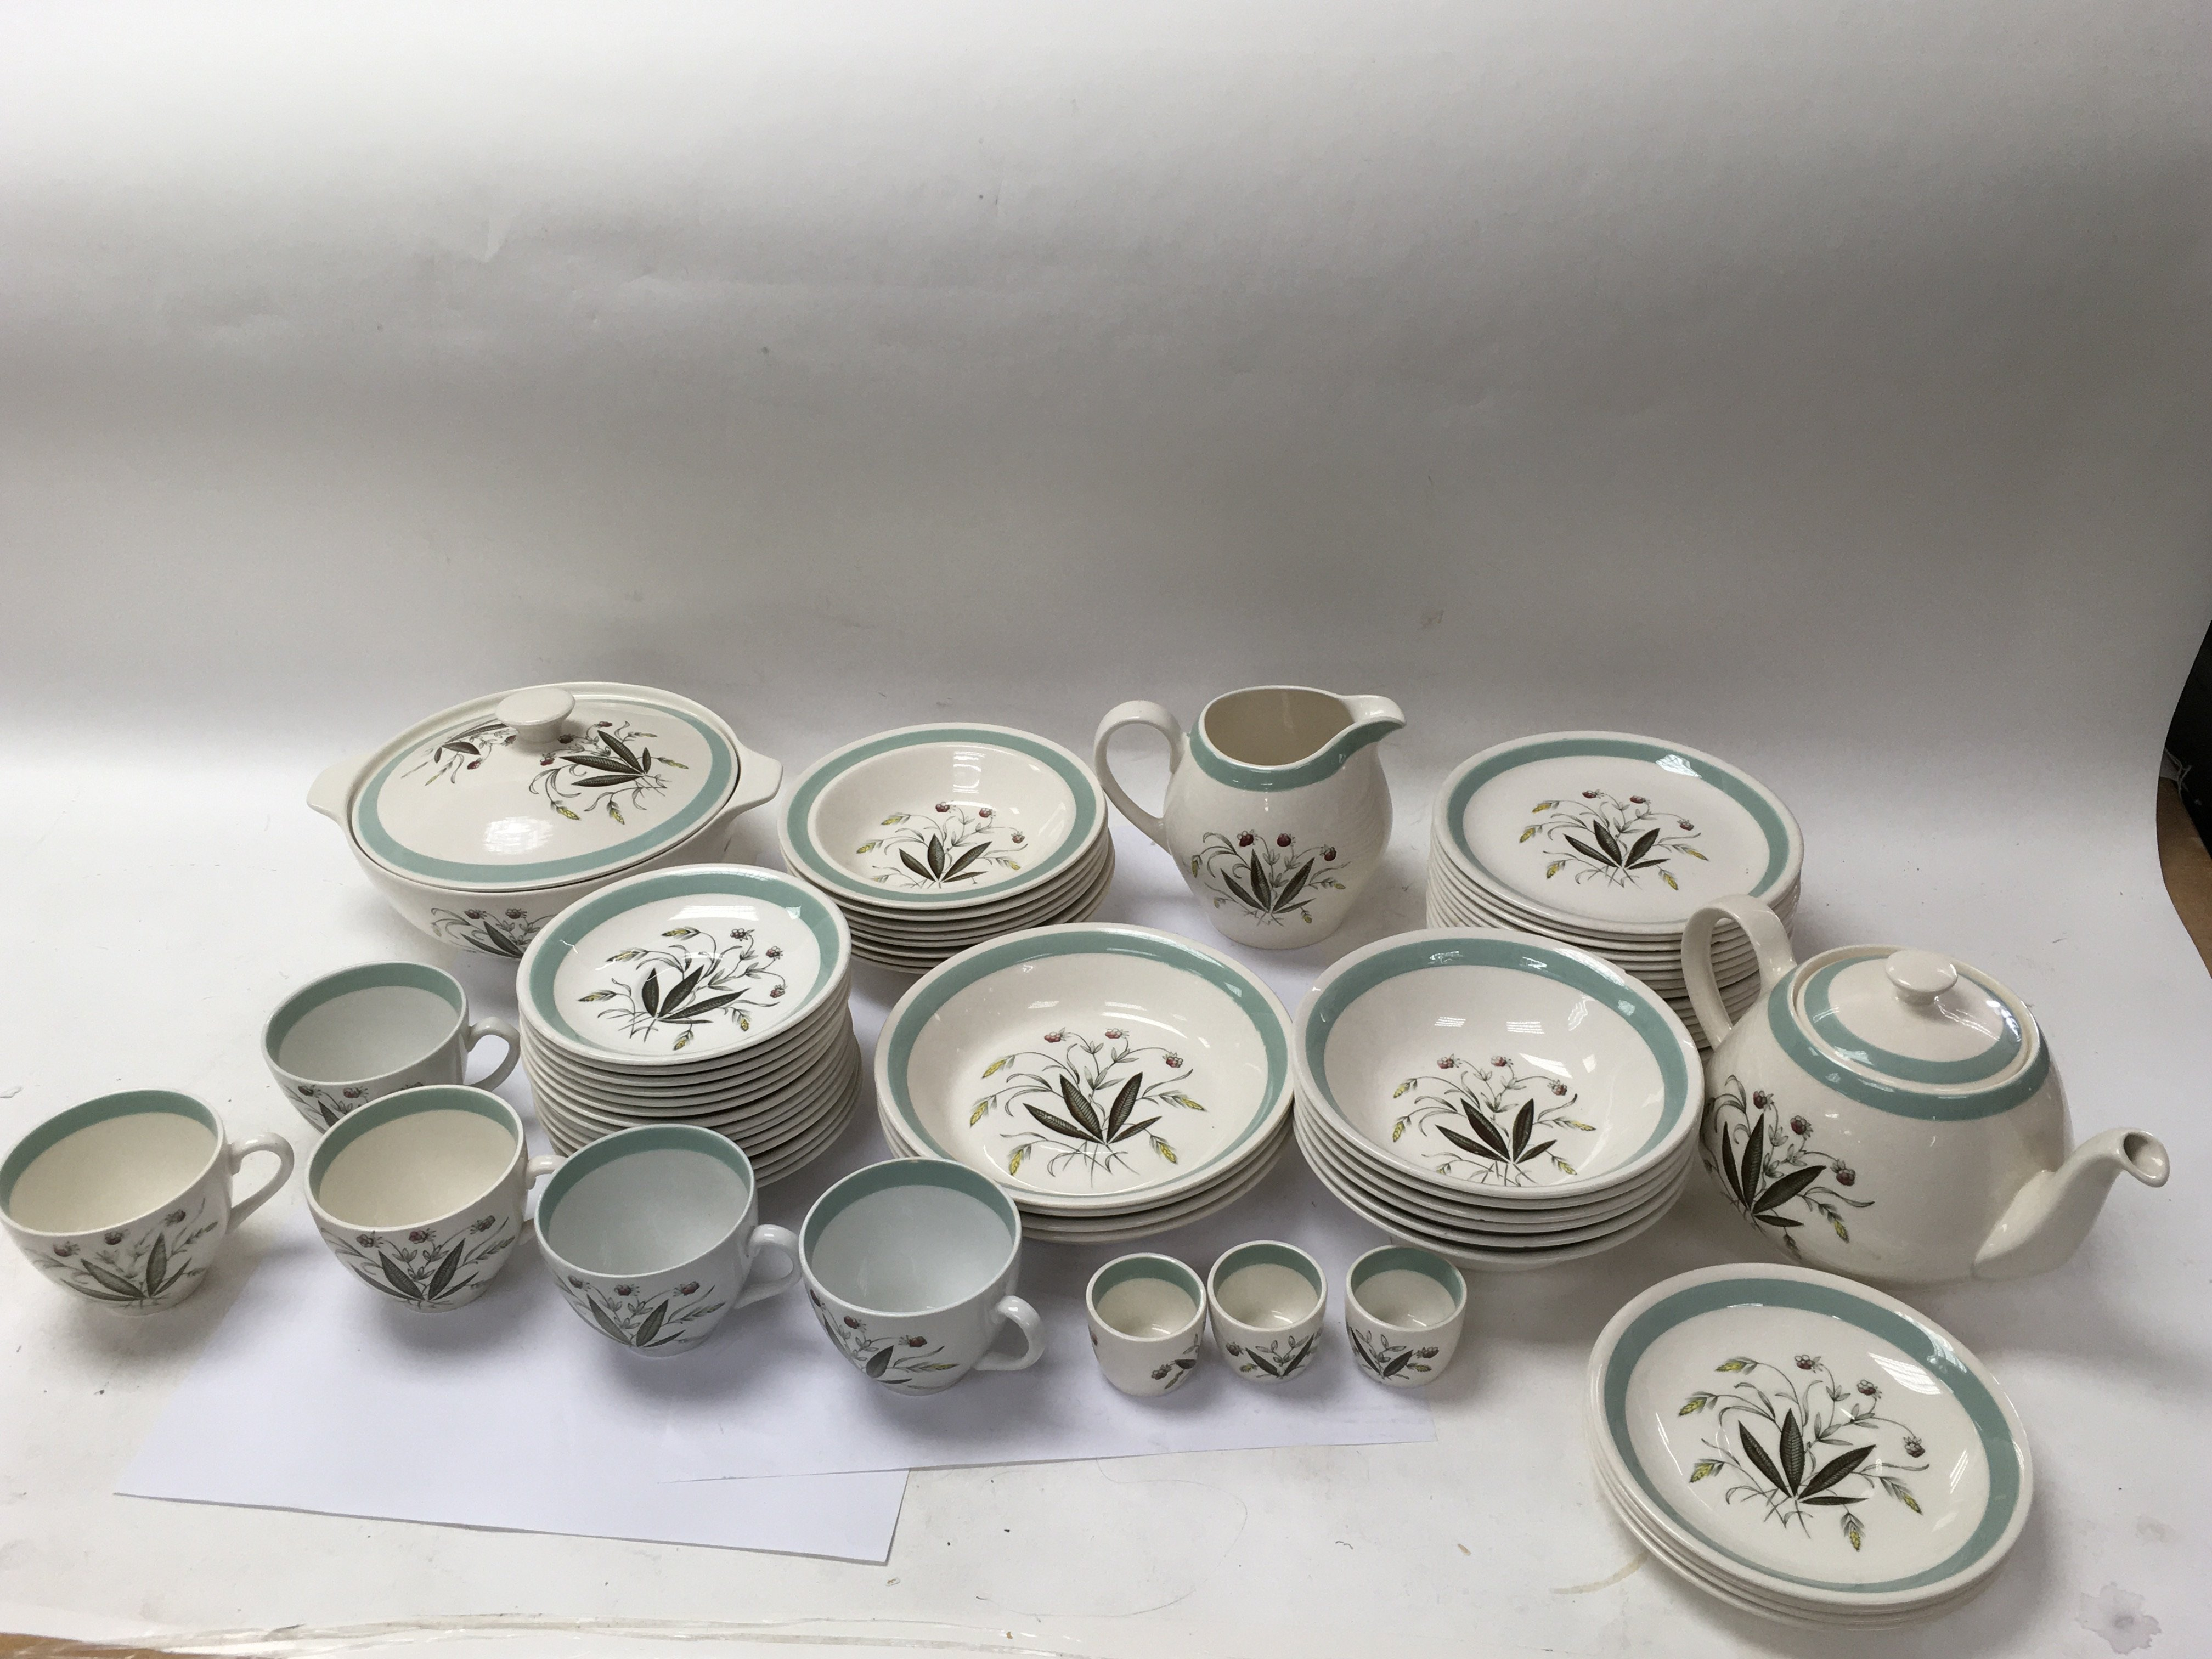 A collective lot of Alfred Meakin ceramics. A mixe